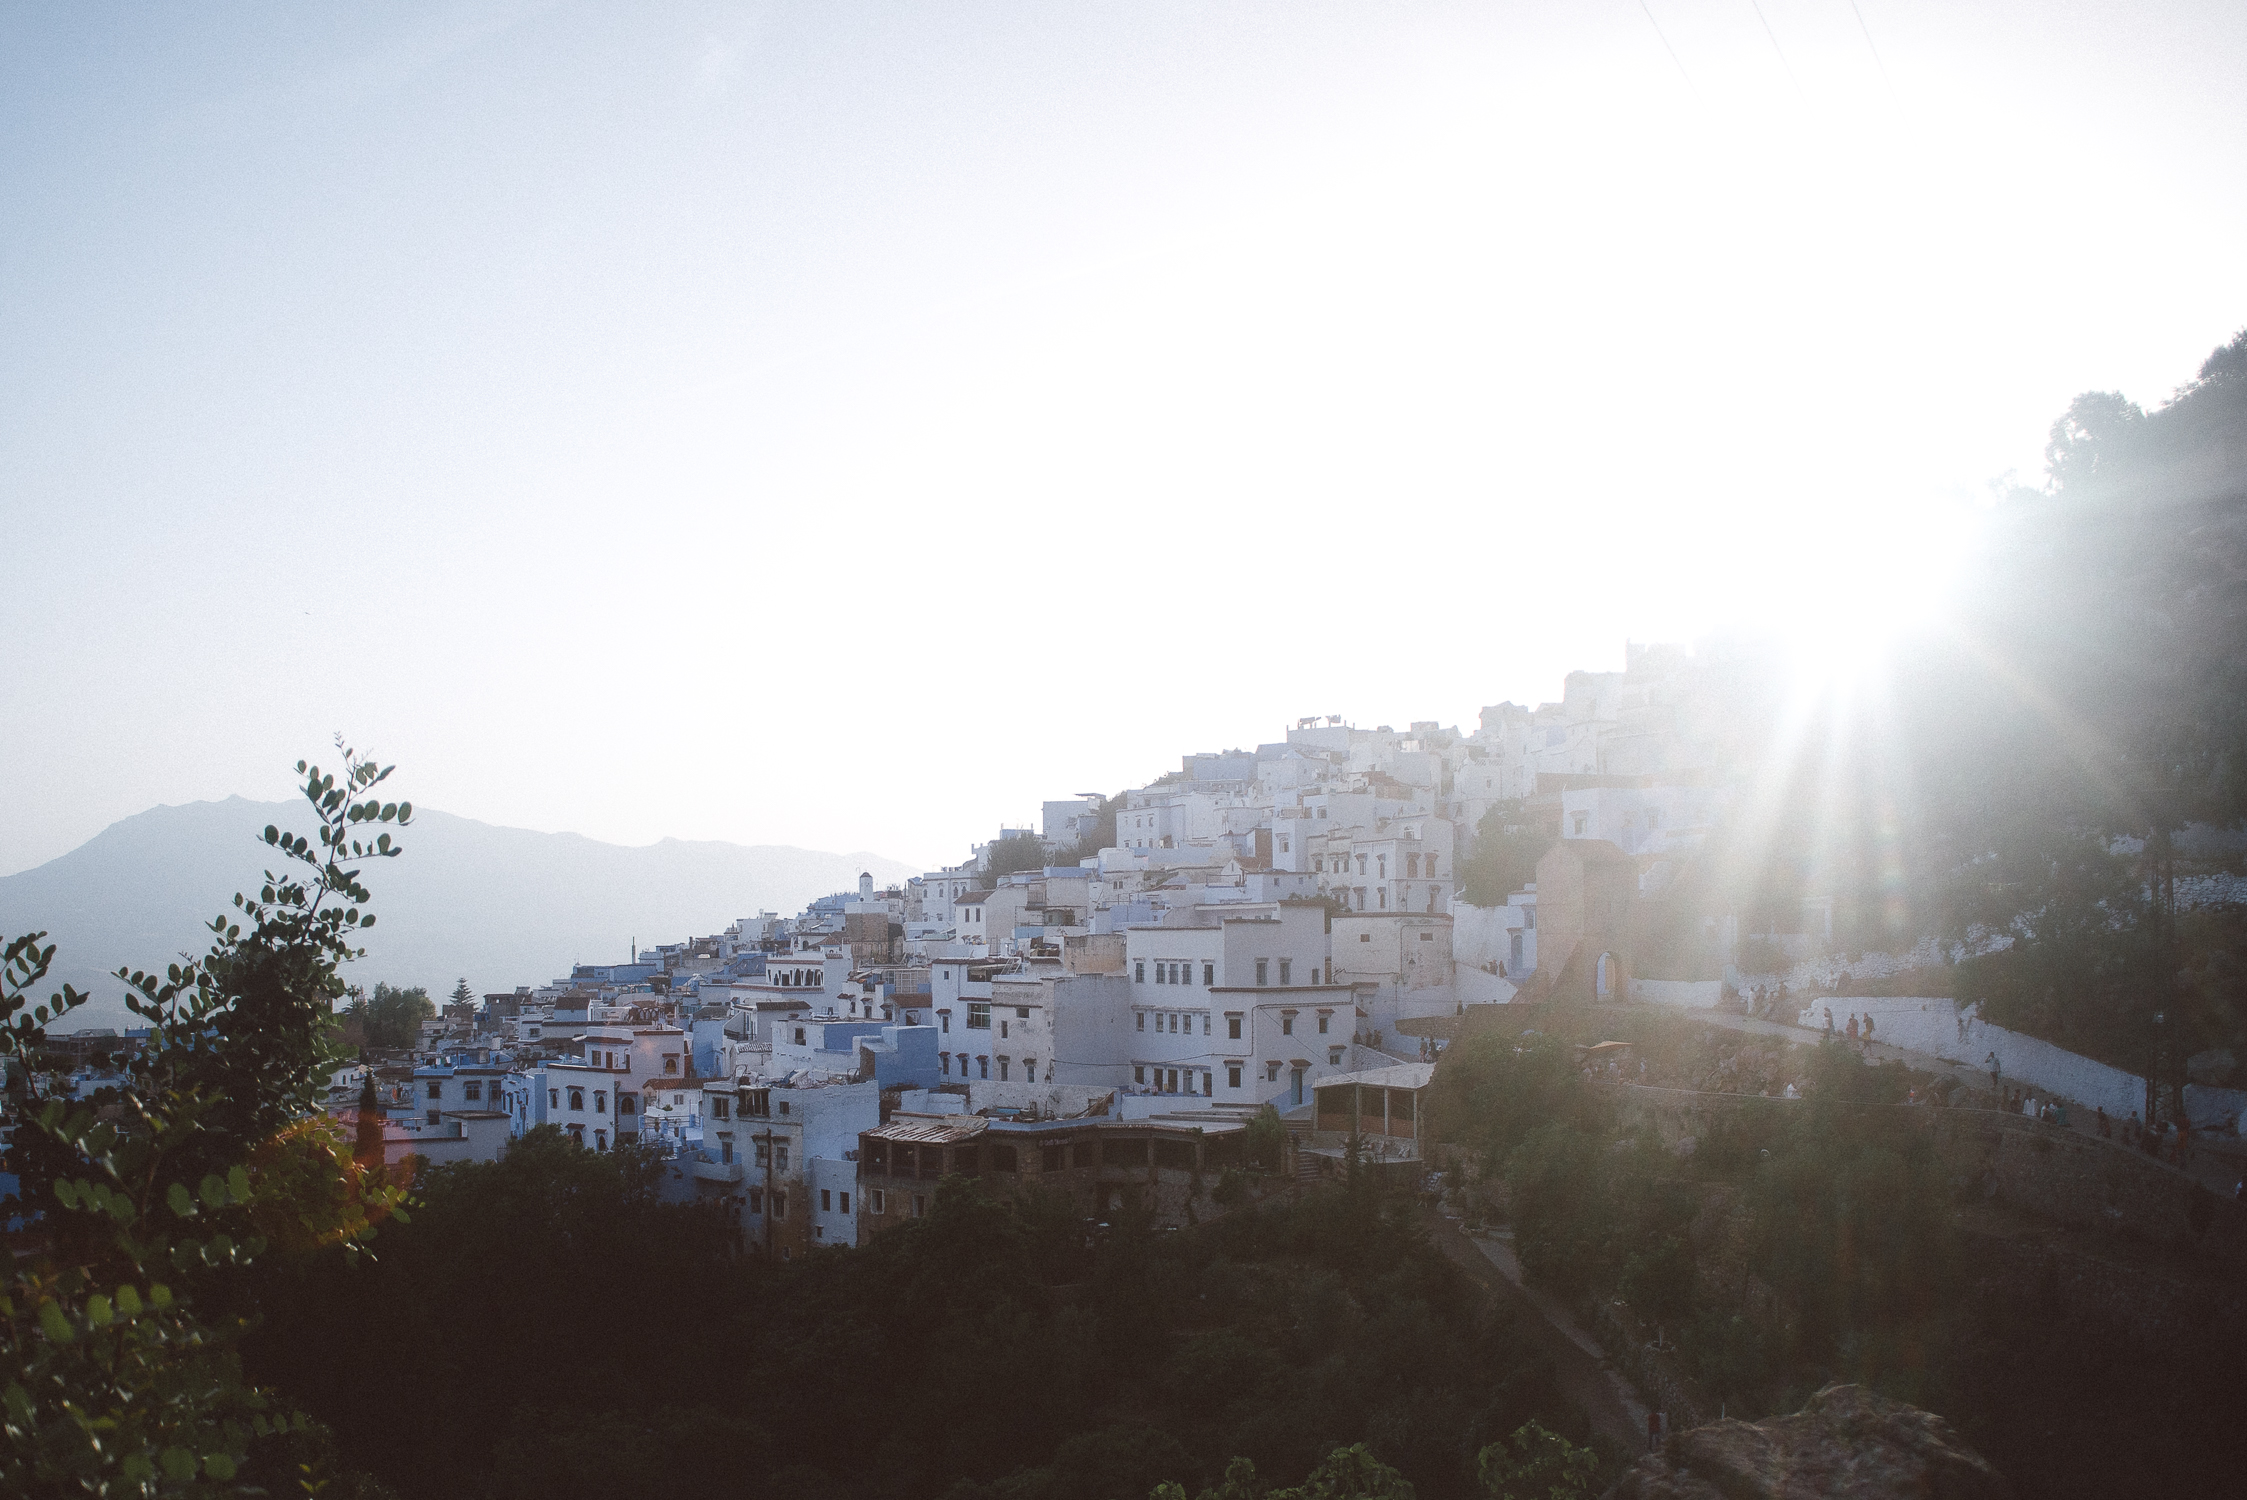 landscape image over looking the town of Chefchaouen in Morocco, blue buildings